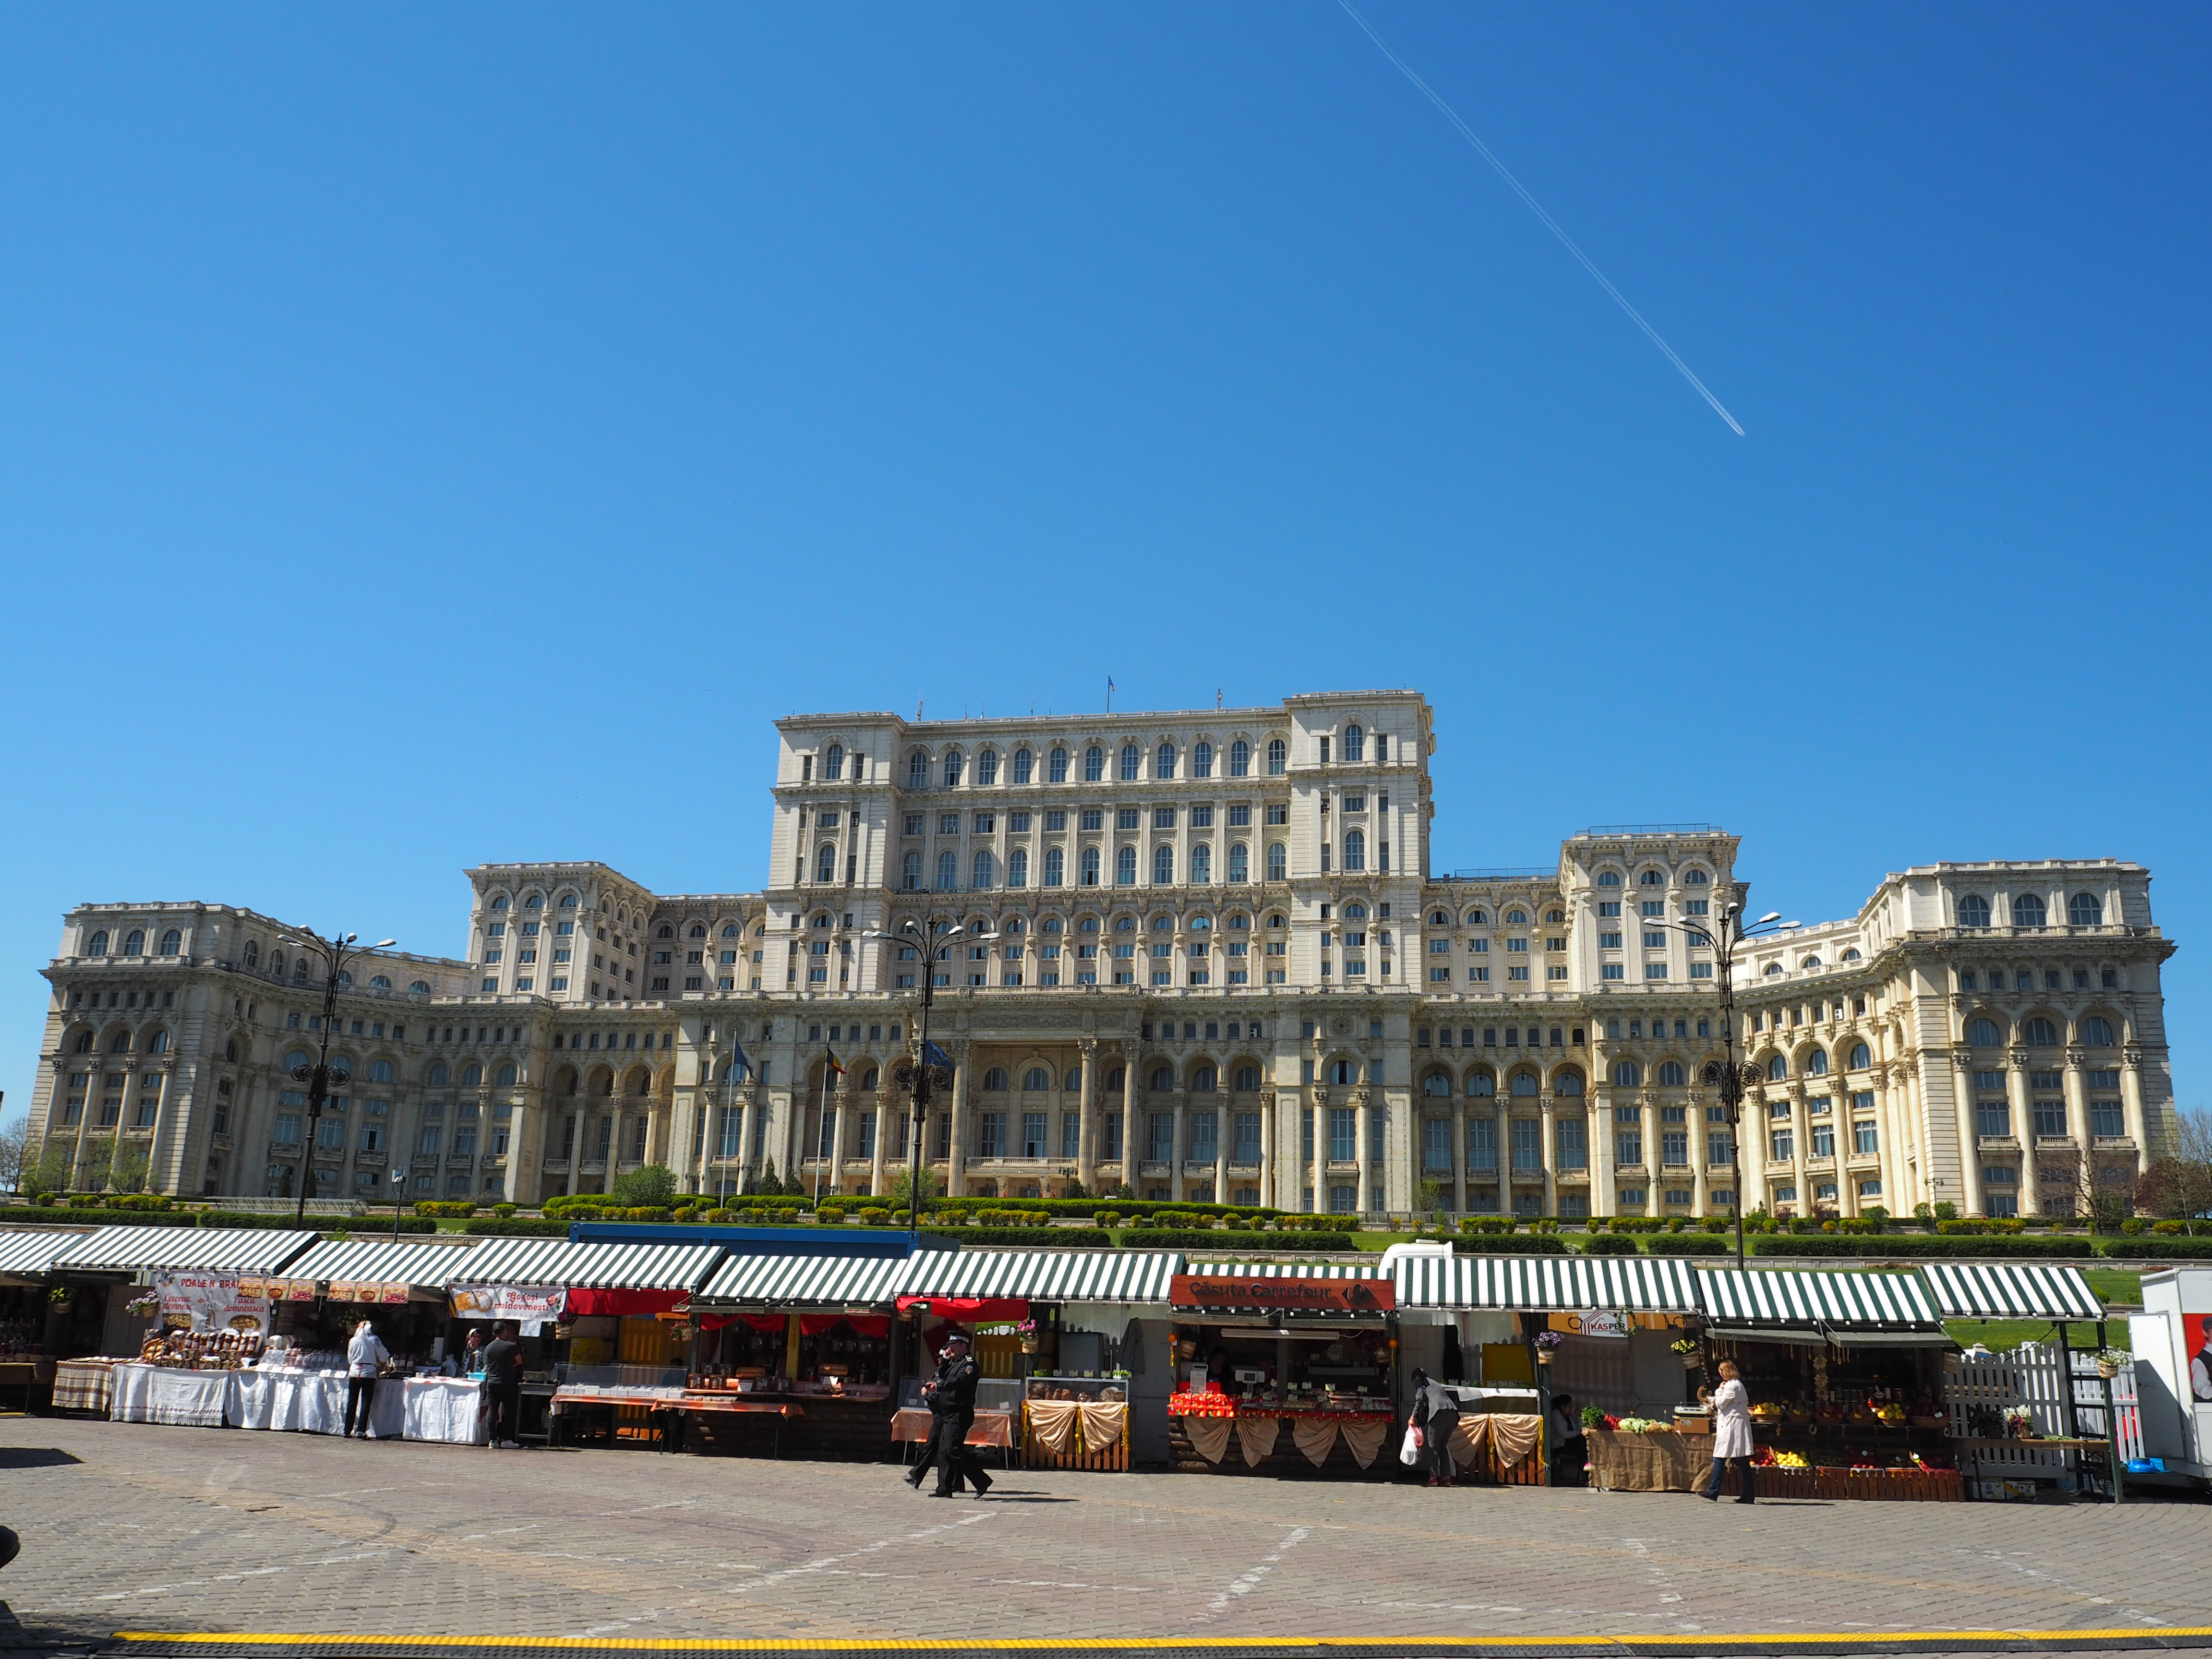 The Palace of Parliament